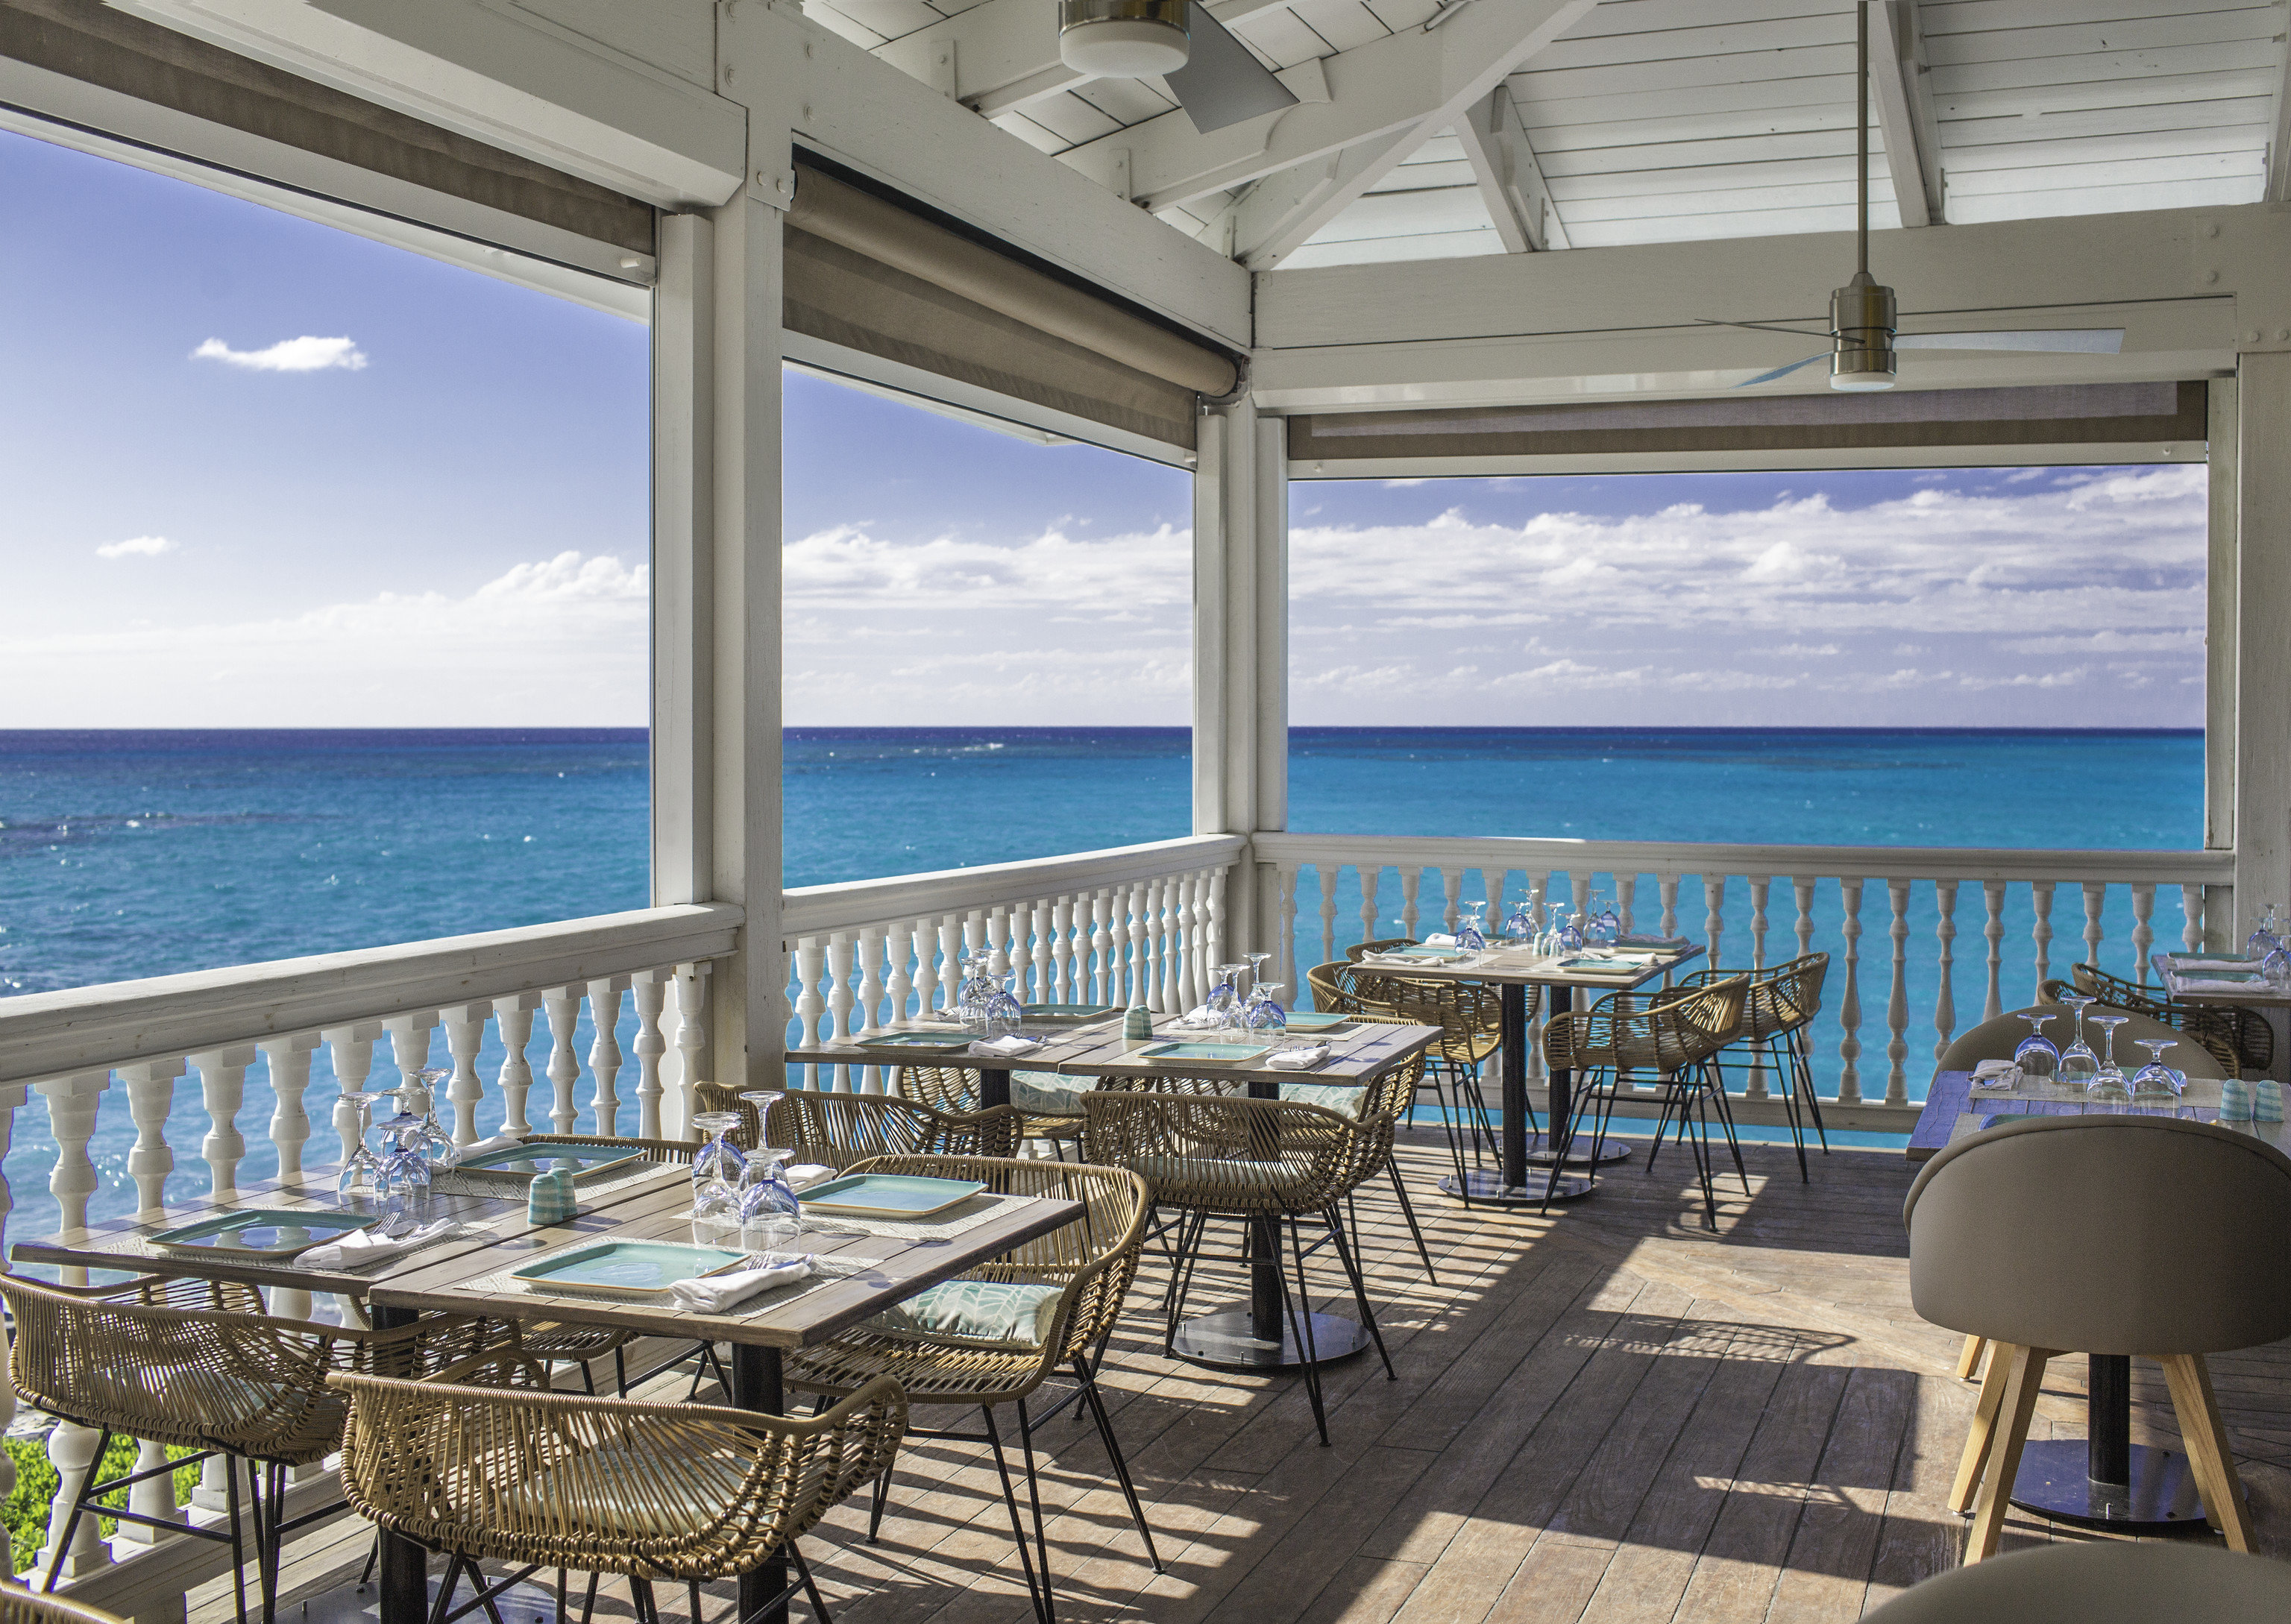 All-Inclusive Resorts caribbean Family Travel Hotels Sea sky real estate Resort apartment water vacation condominium penthouse apartment window outdoor structure interior design Ocean restaurant roof